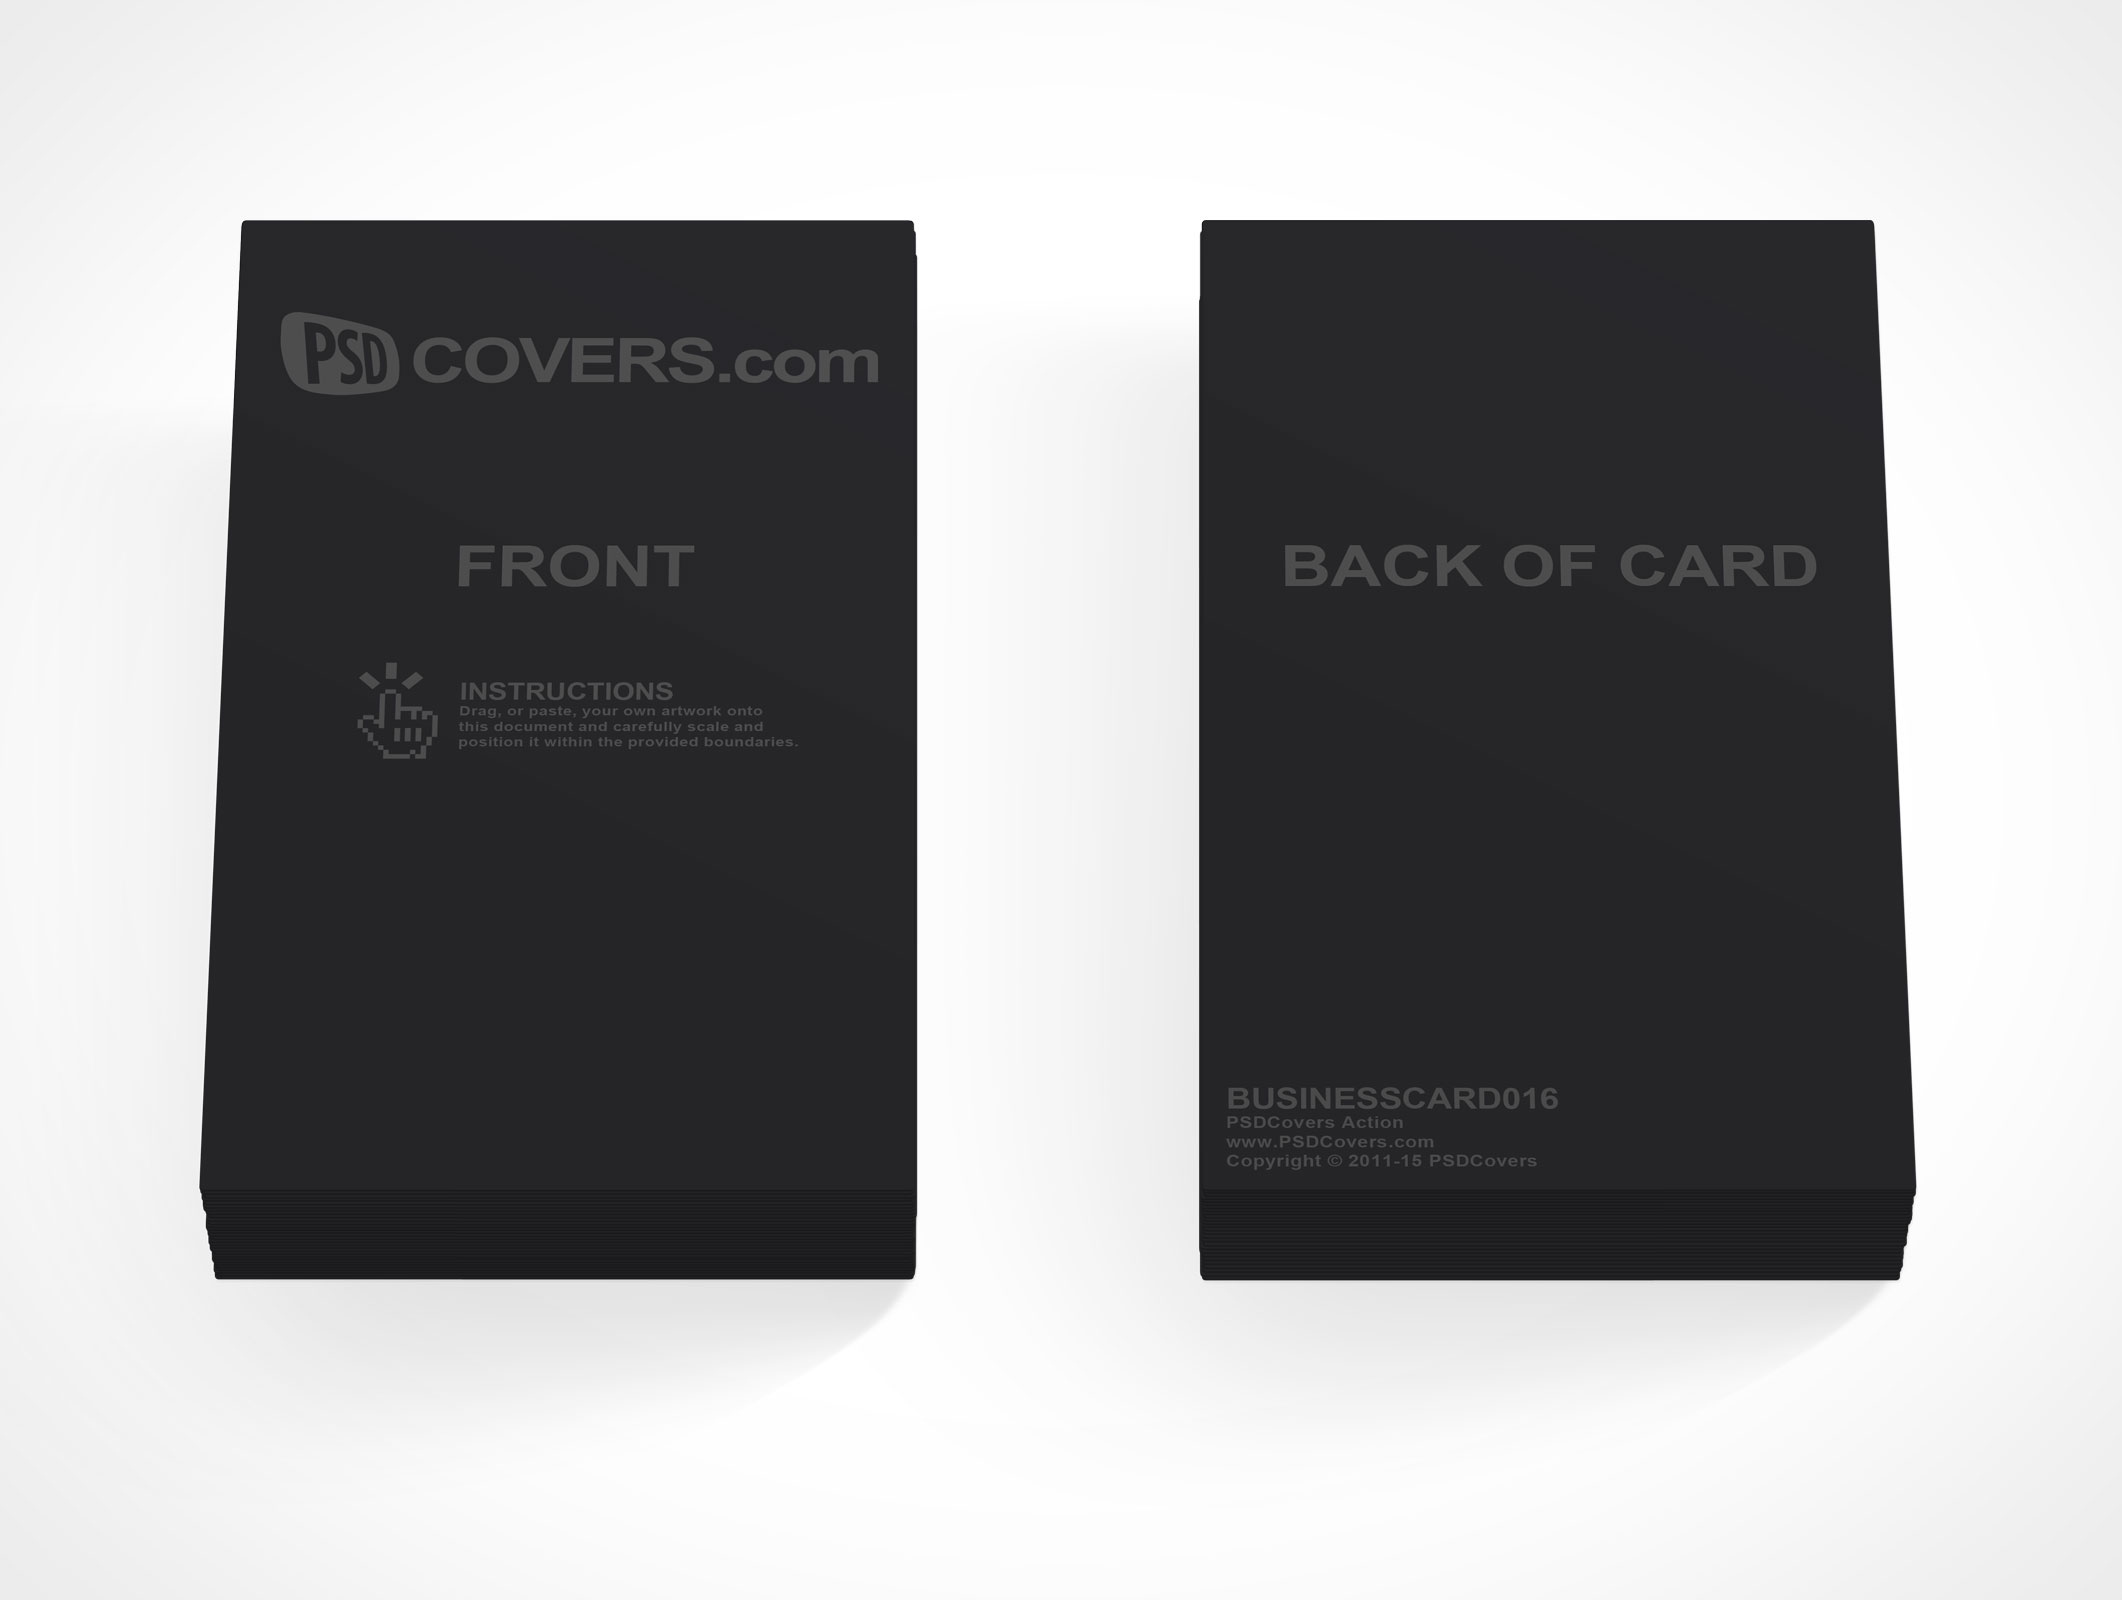 Business Card Archives • PSDCovers